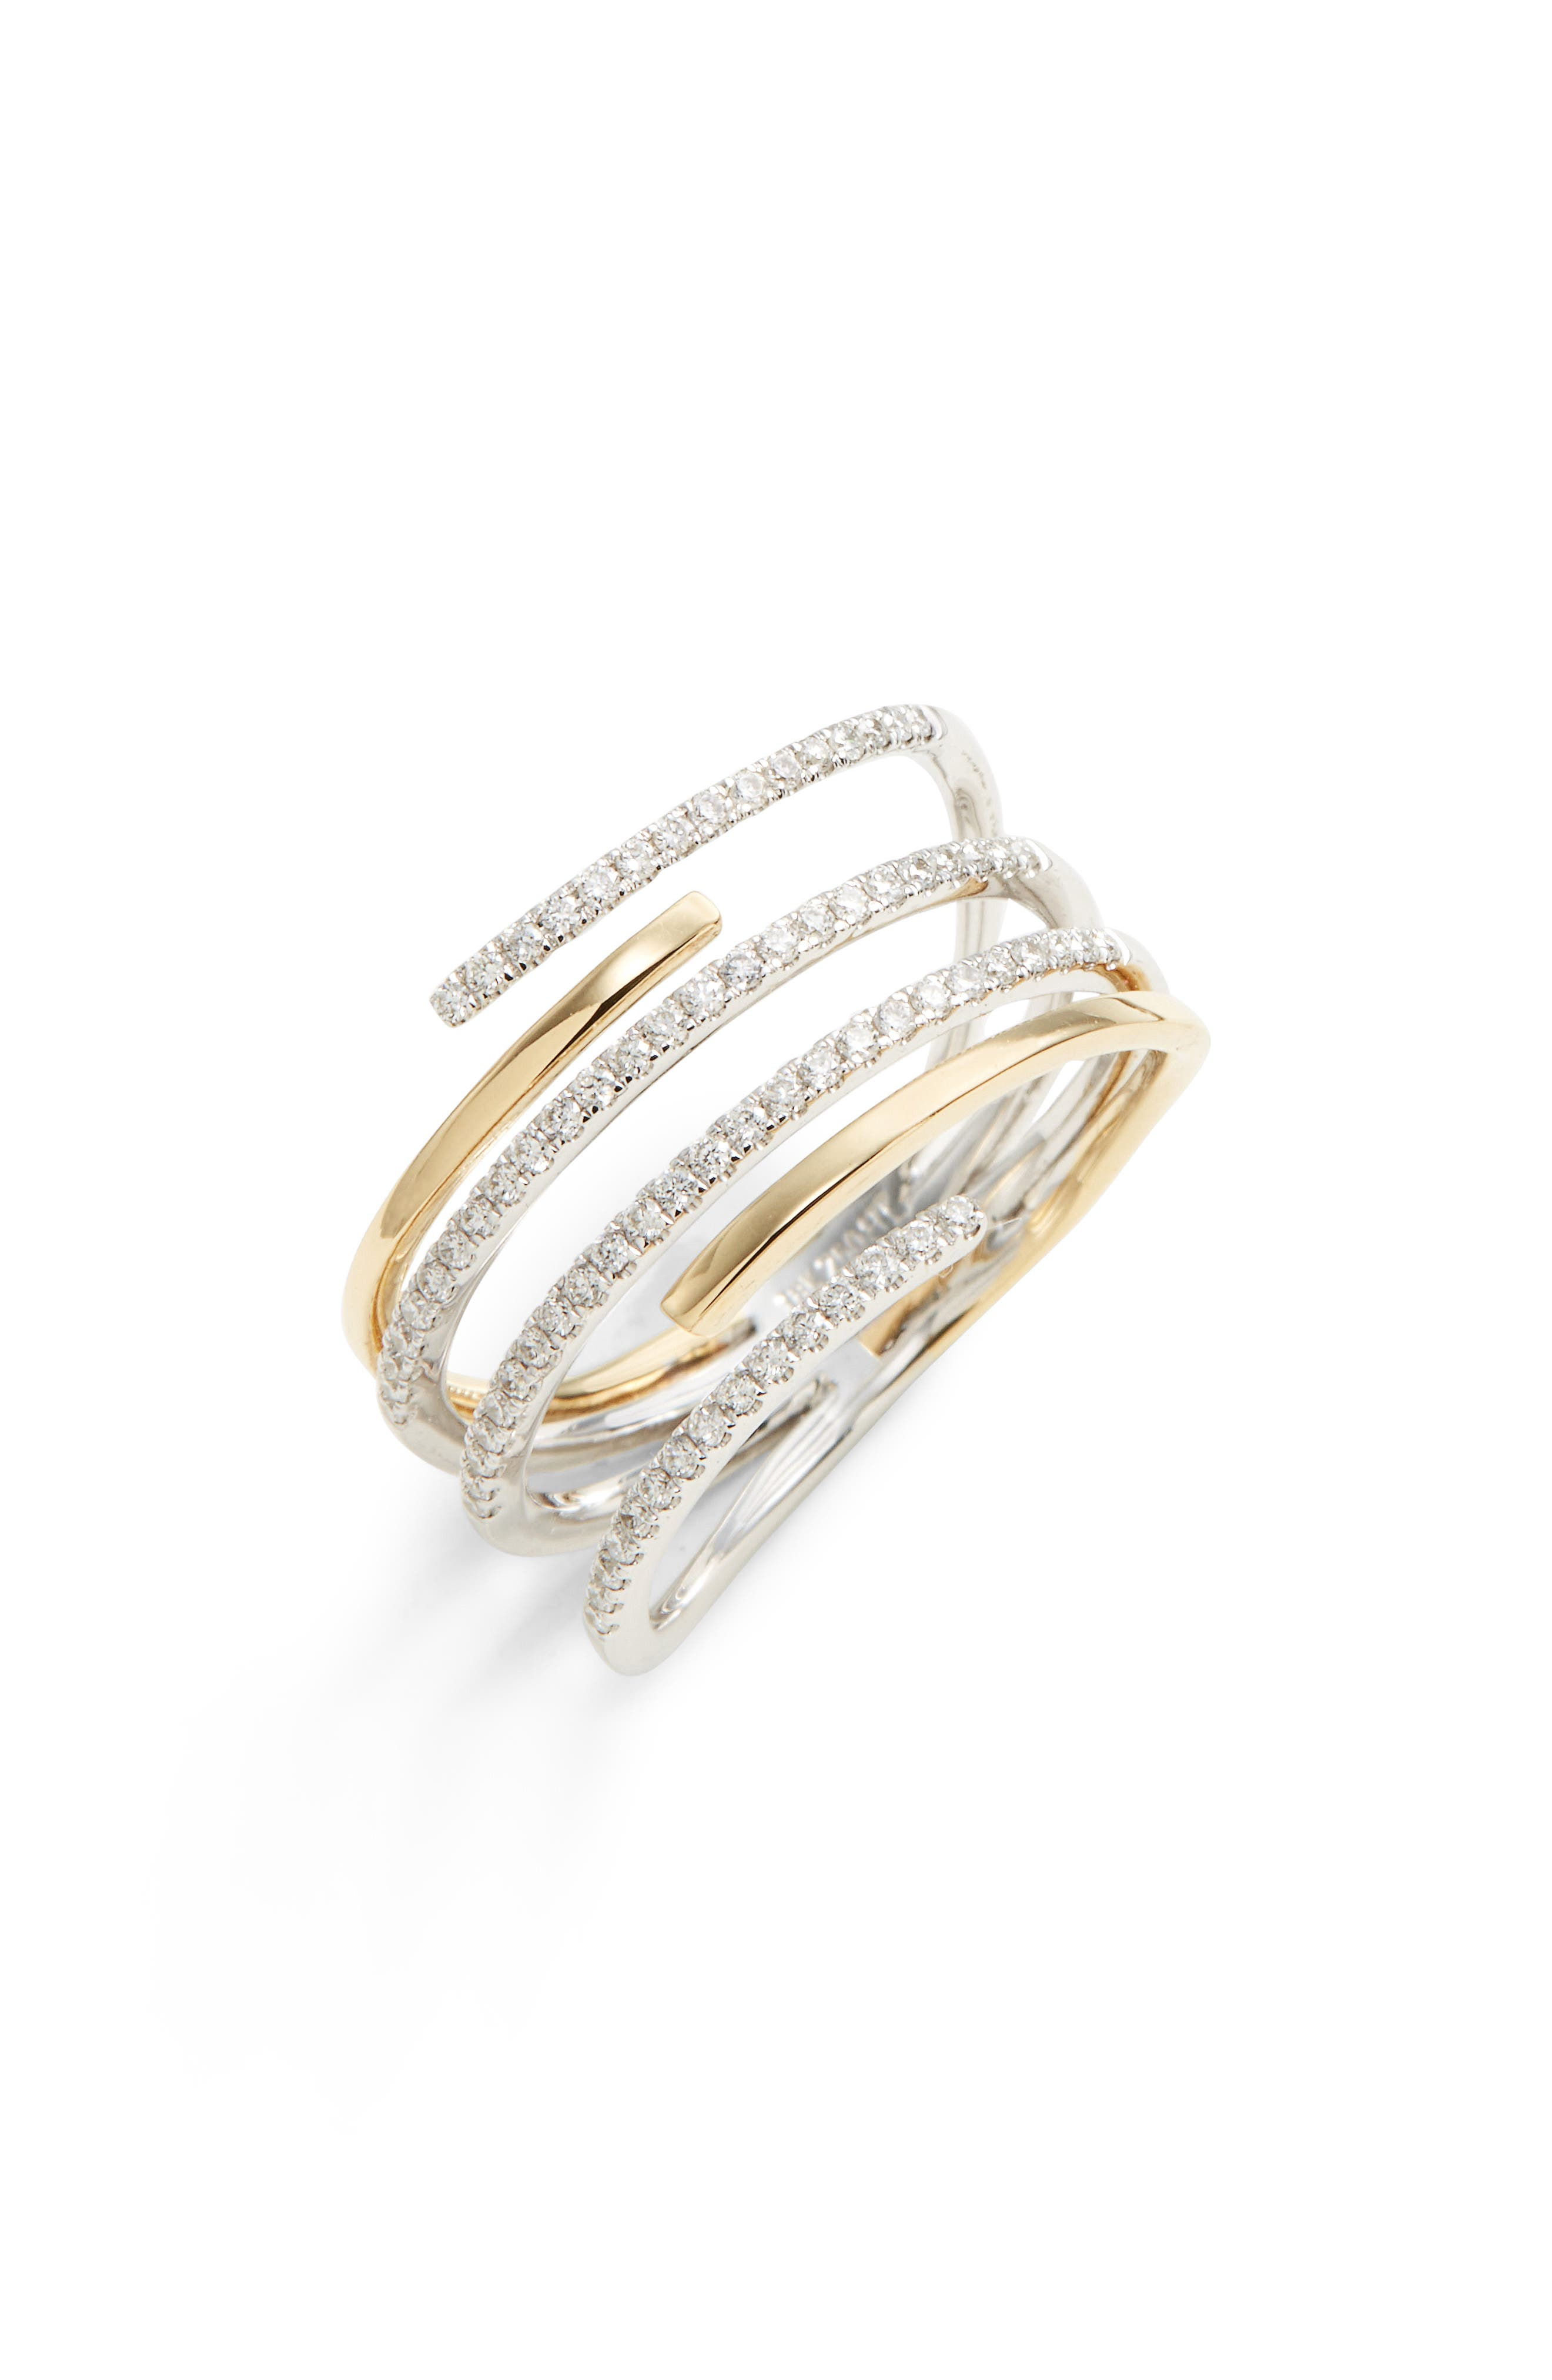 Openwork Diamond Ring,                             Main thumbnail 1, color,                             YELLOW GOLD/ WHITE GOLD